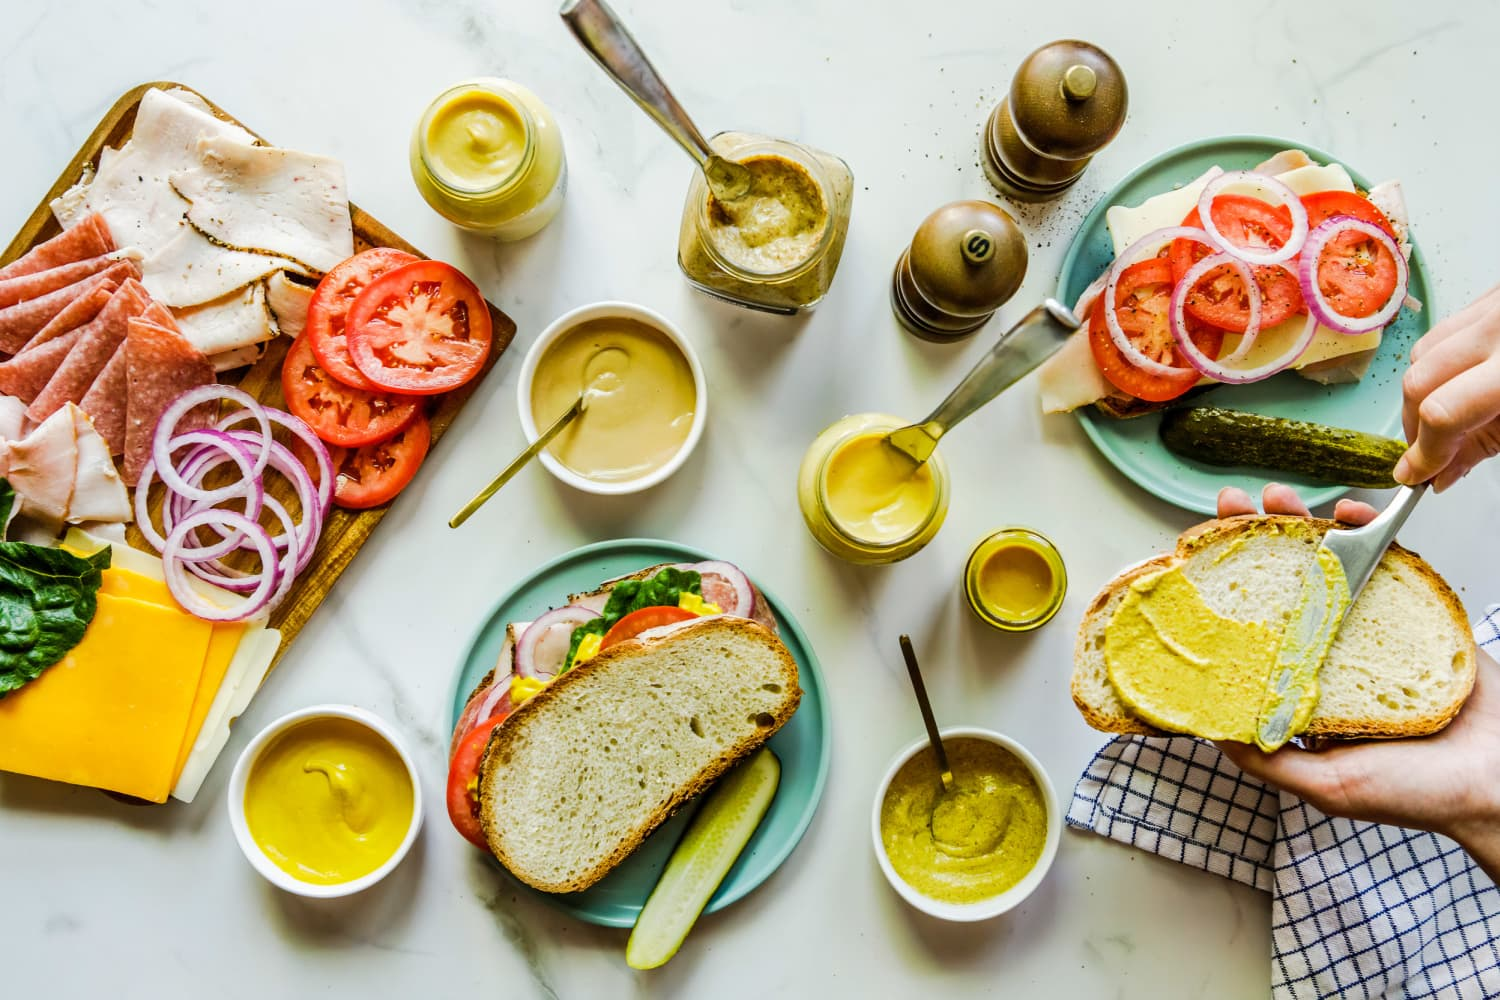 I Tried 38 Different Bottles of Mustard — These Are the Ones I'll Buy Again